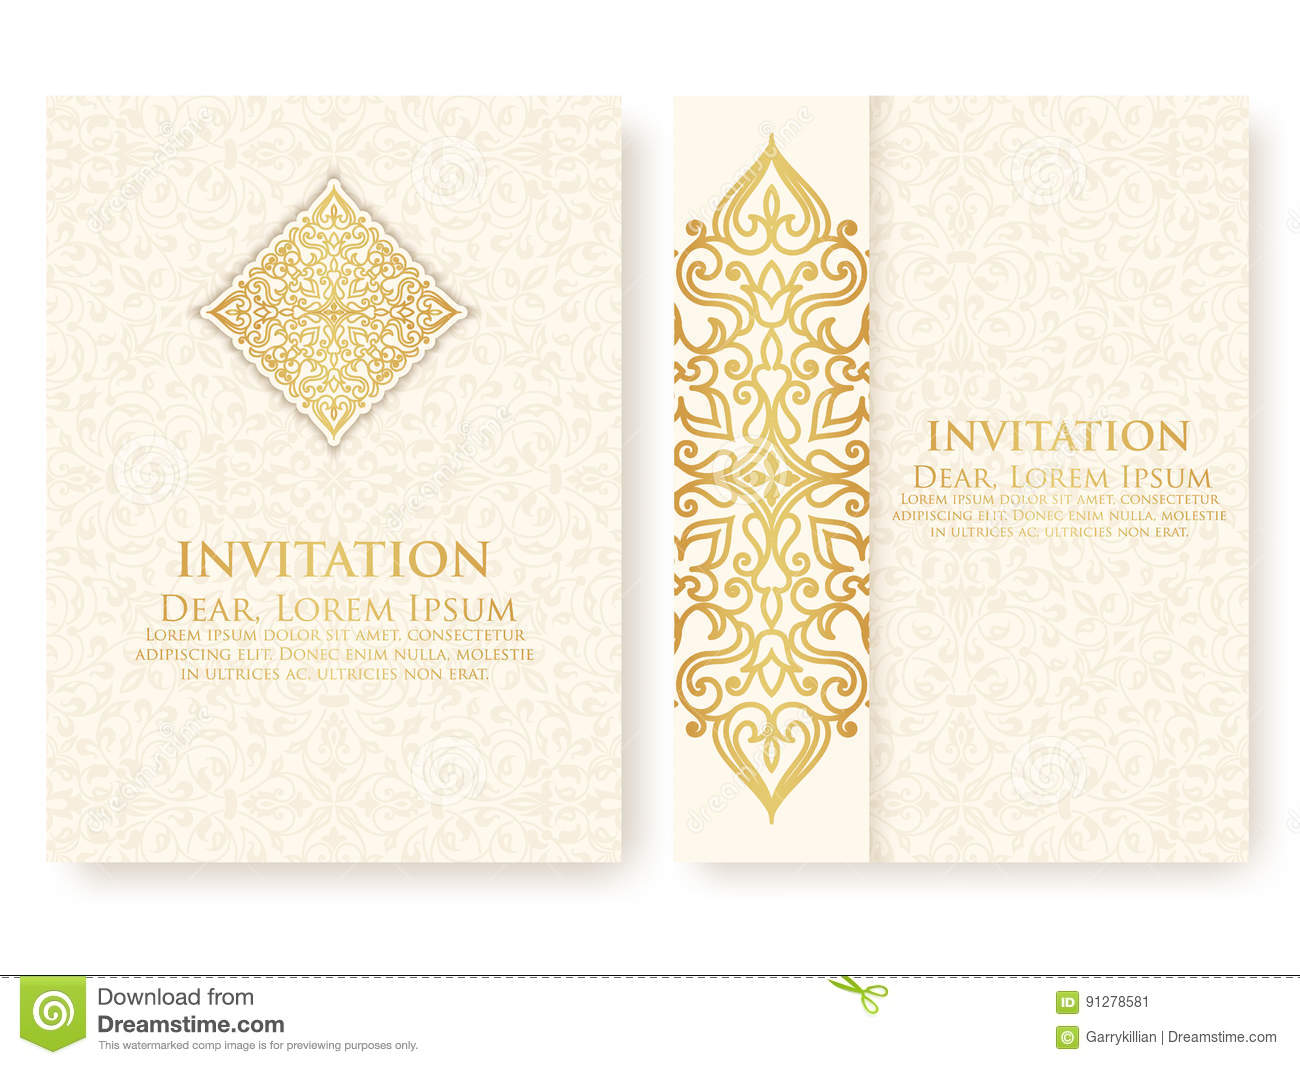 Vector invitation cards with ethnic arabesque elements arabesque royalty free vector download vector invitation stopboris Choice Image